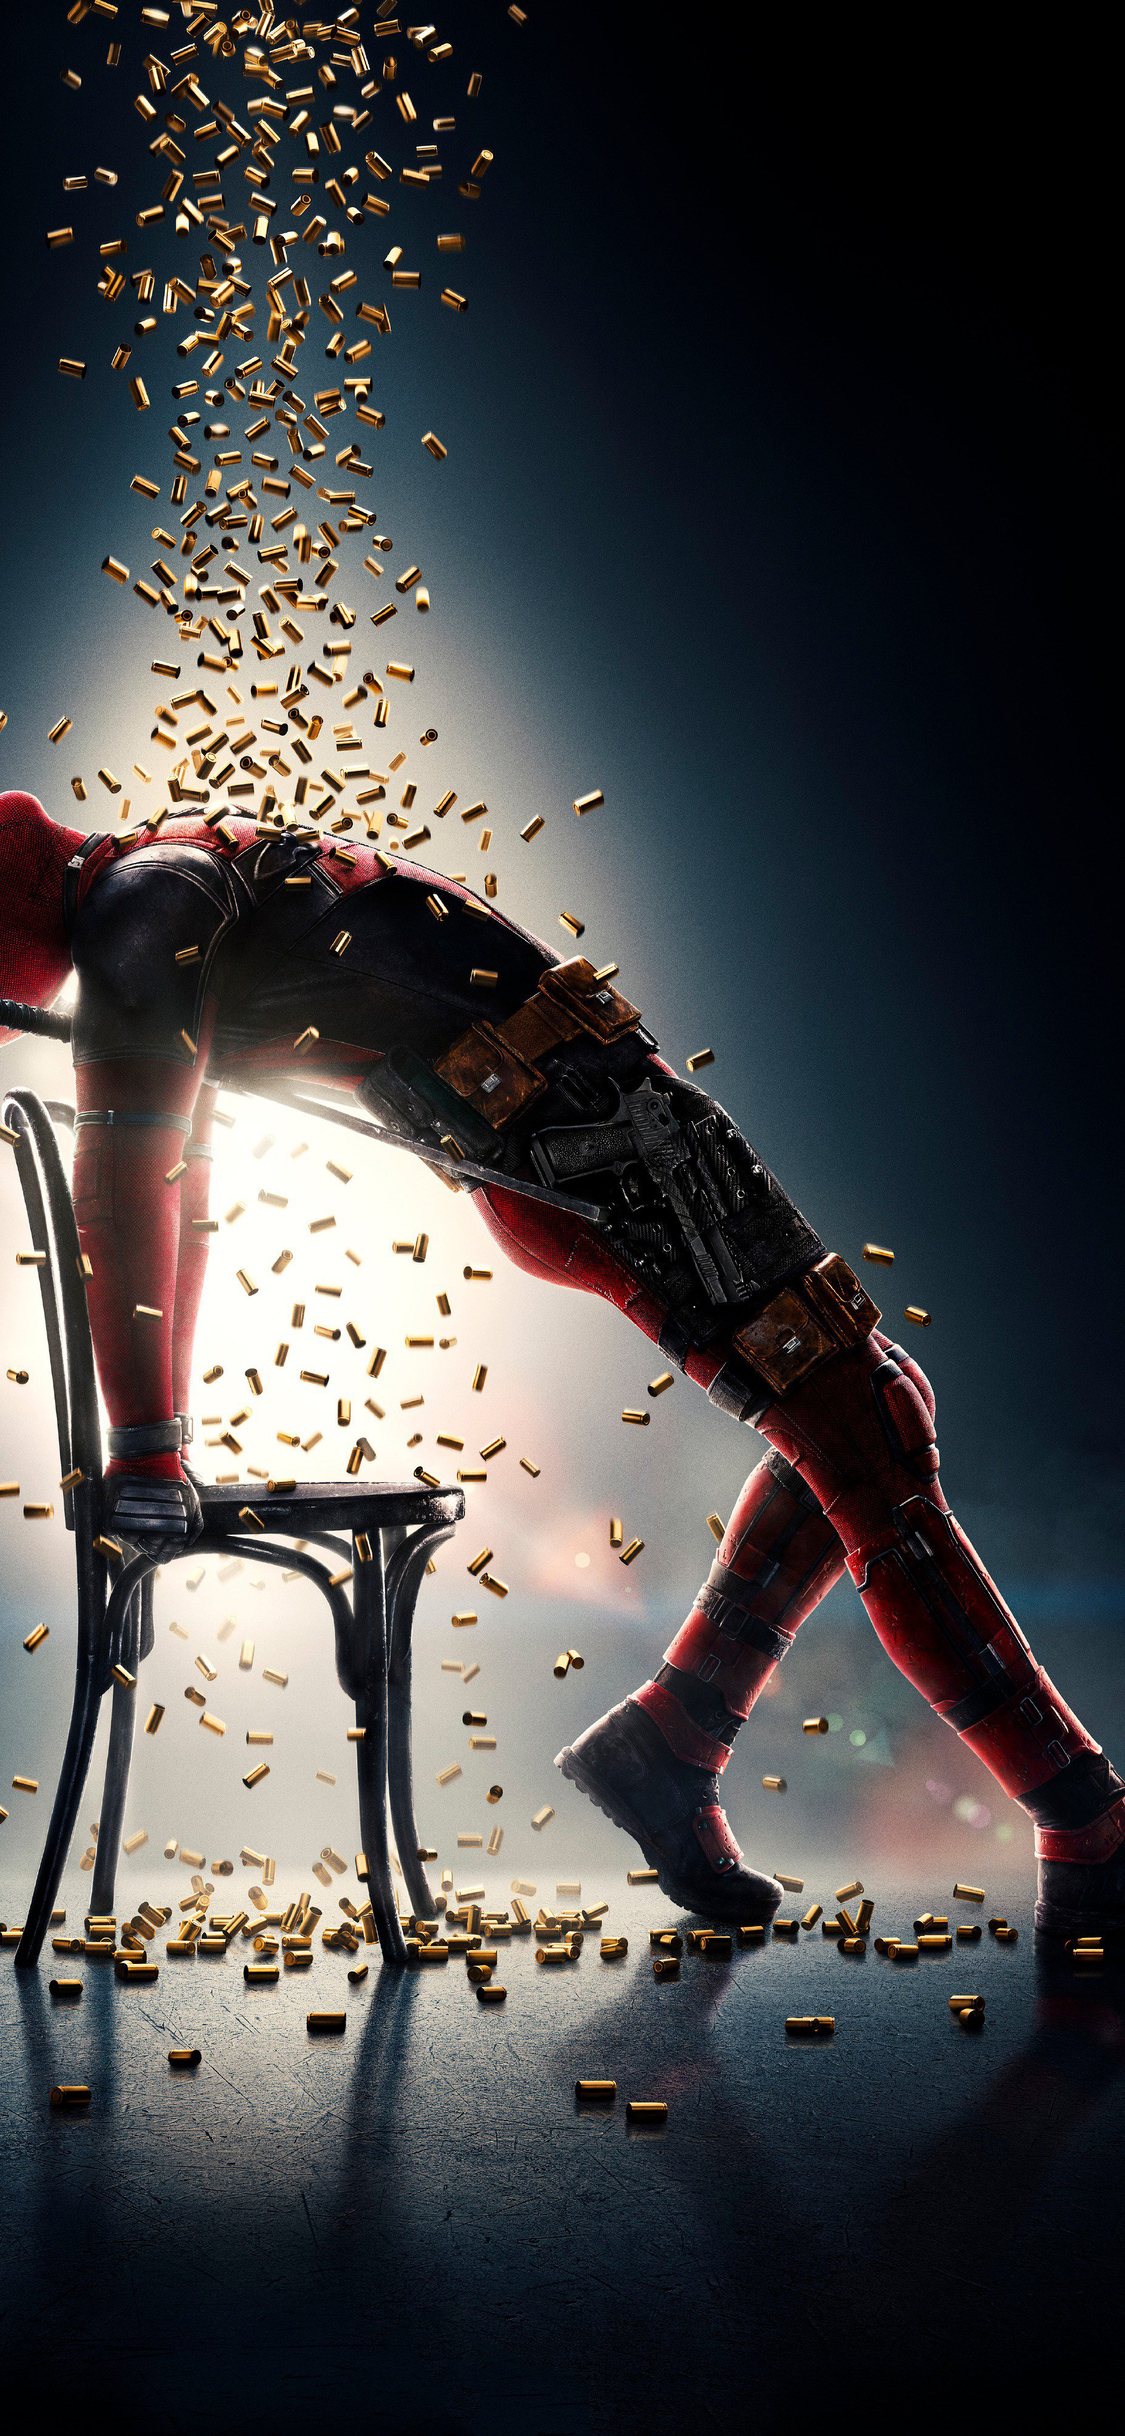 1125x2436 Deadpool 2 Poster 2018 Movie Iphone Xs Iphone 10 Iphone X